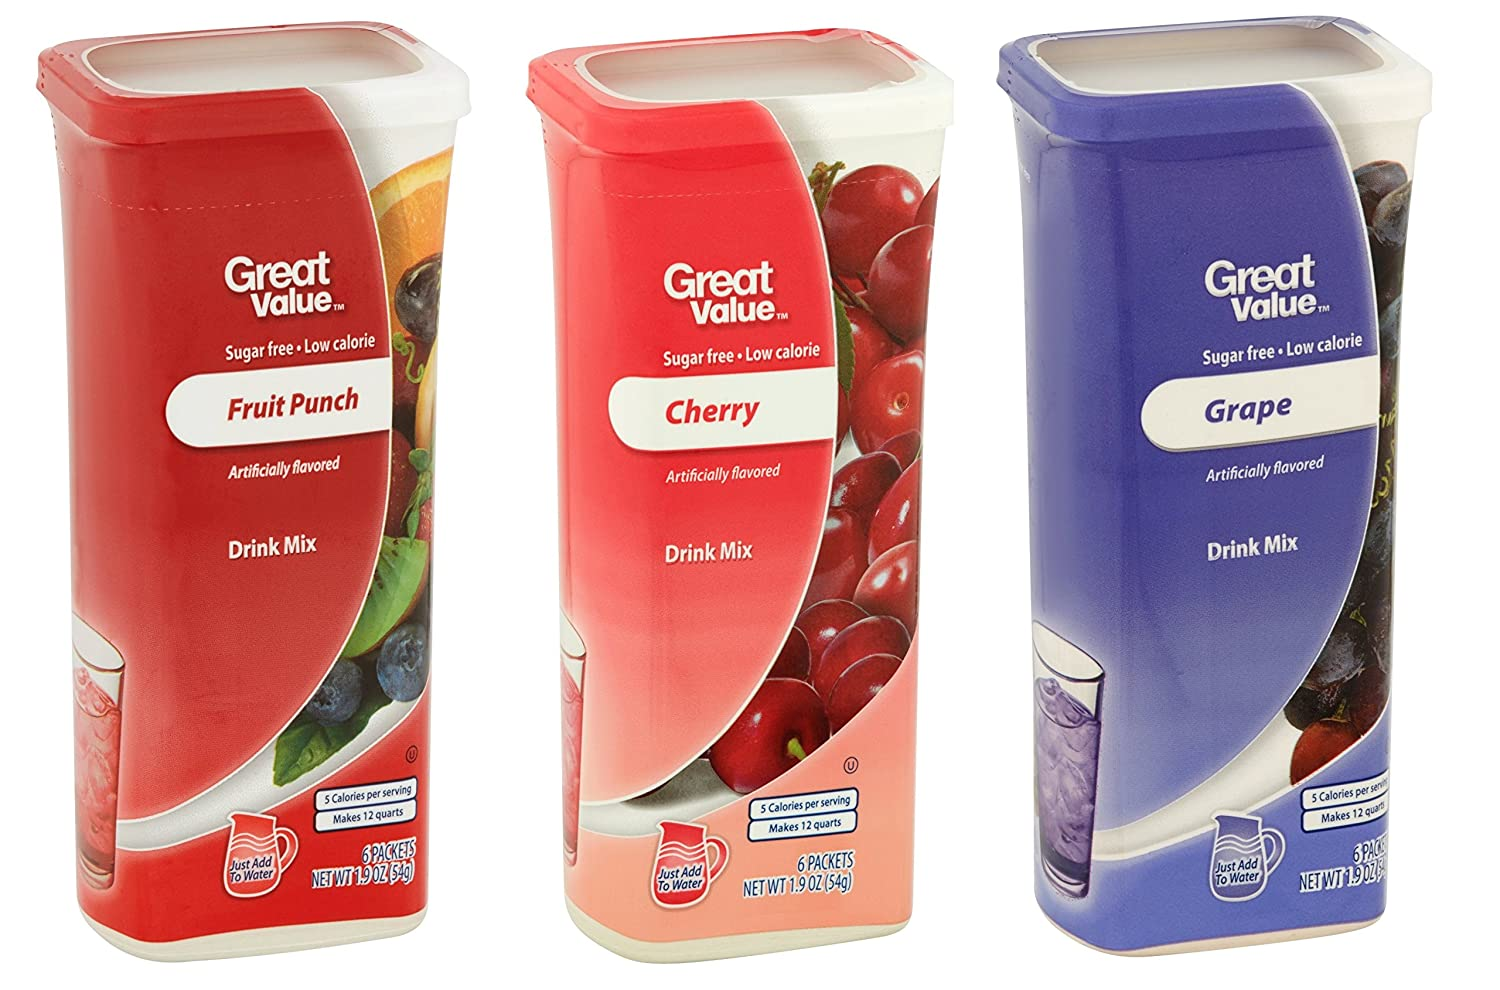 Great Value Drink Mix, Sugar Free, Fruit Punch, Cherry and Grape Bundle of 3 flavor Canisters. (Canister Designs May Vary)